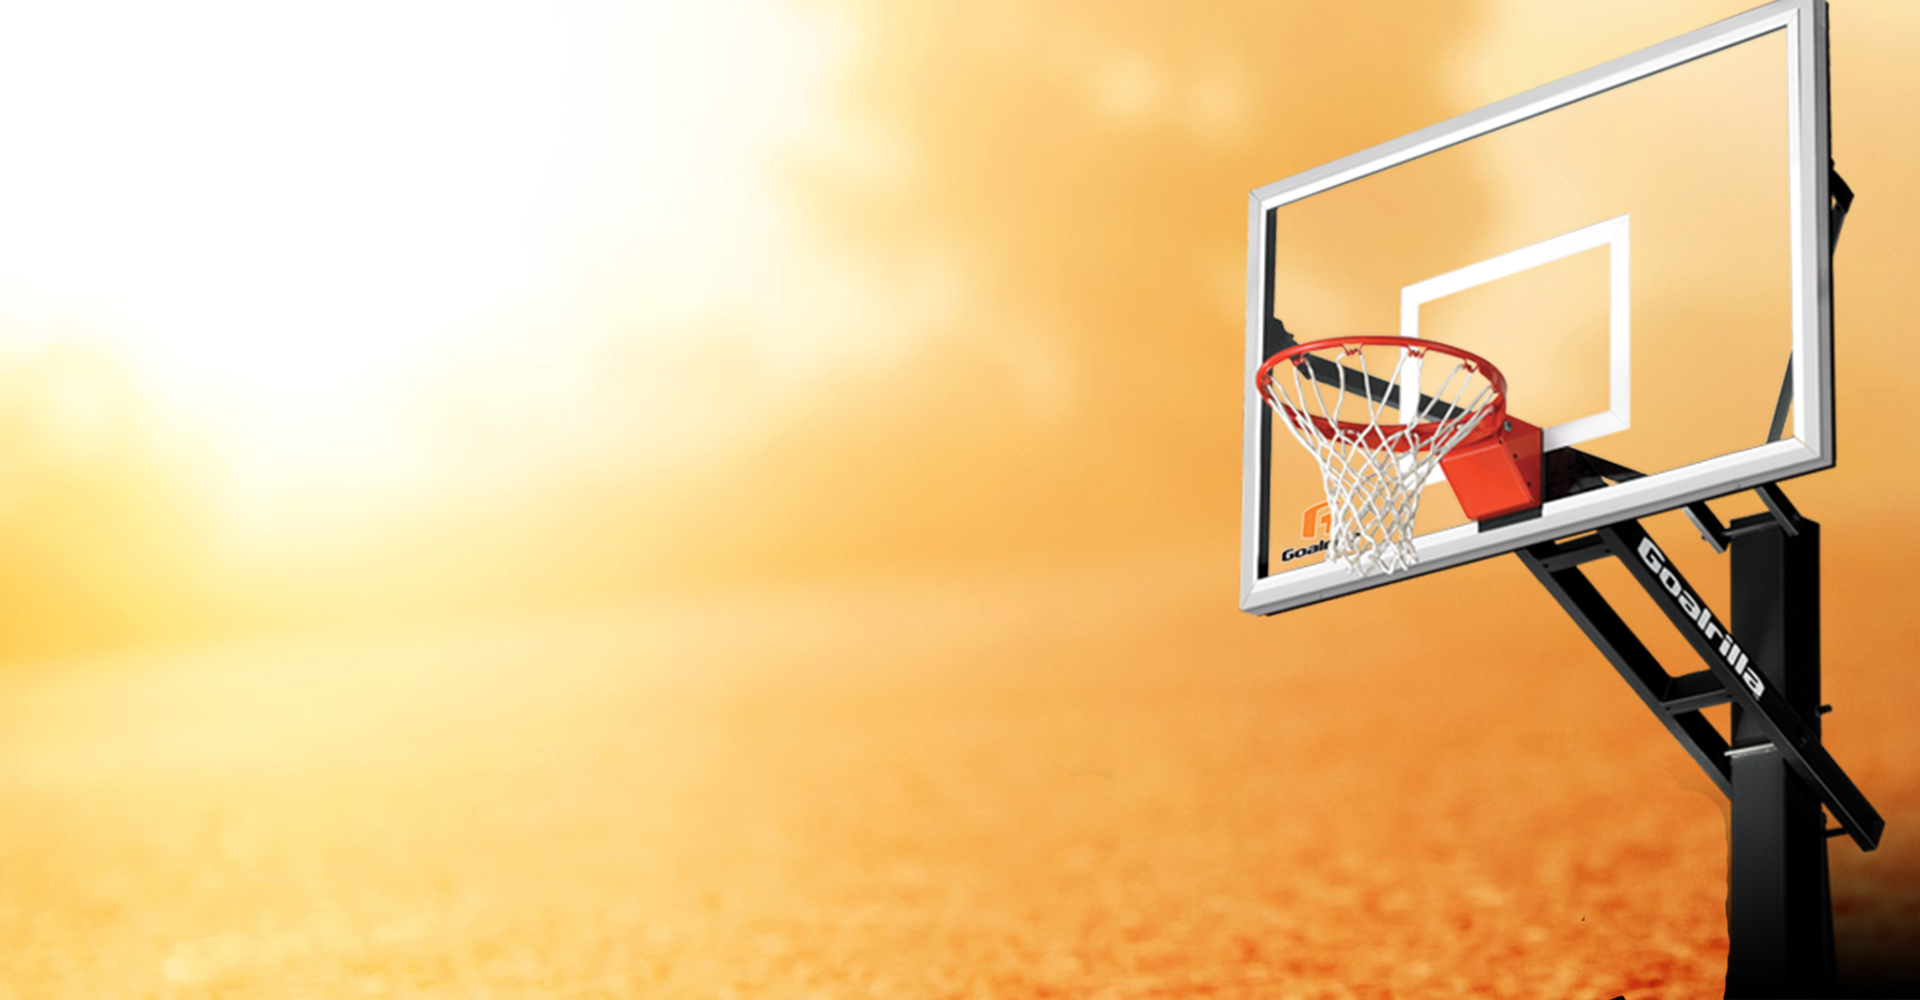 goalrilla basketball hoop review